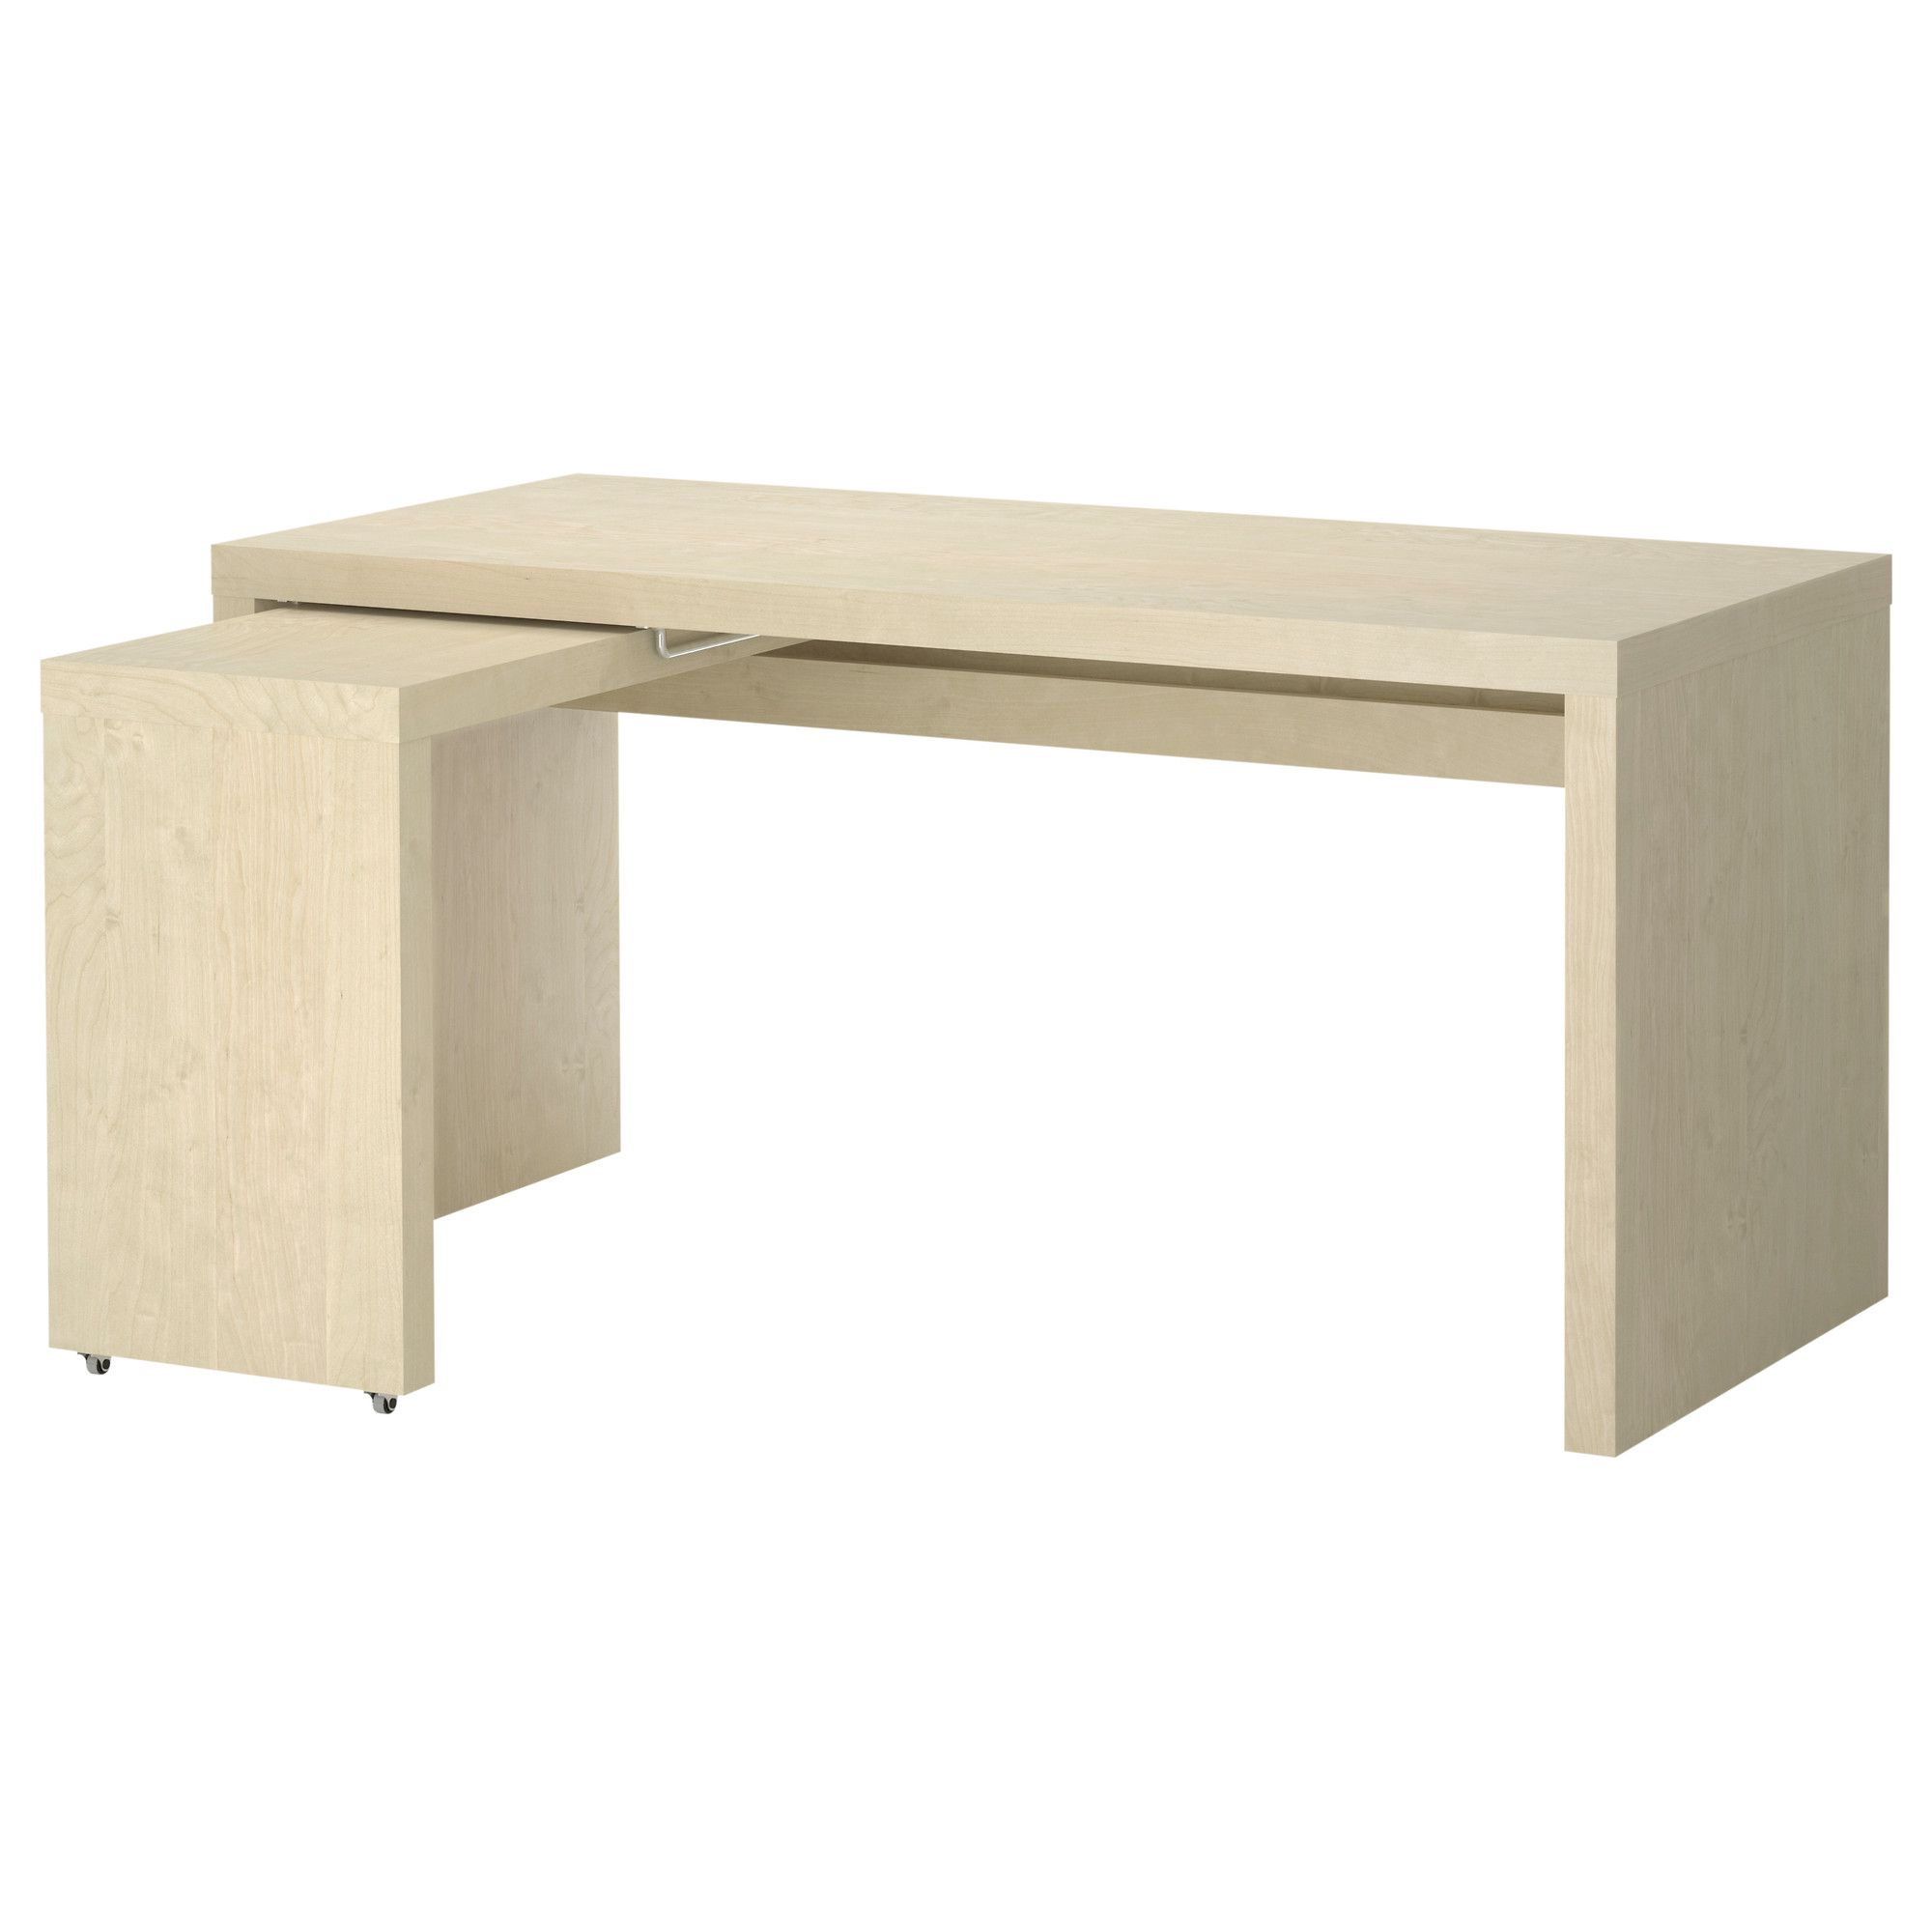 IKEA - MALM, Desk with pull-out panel, birch veneer, Might be good ...